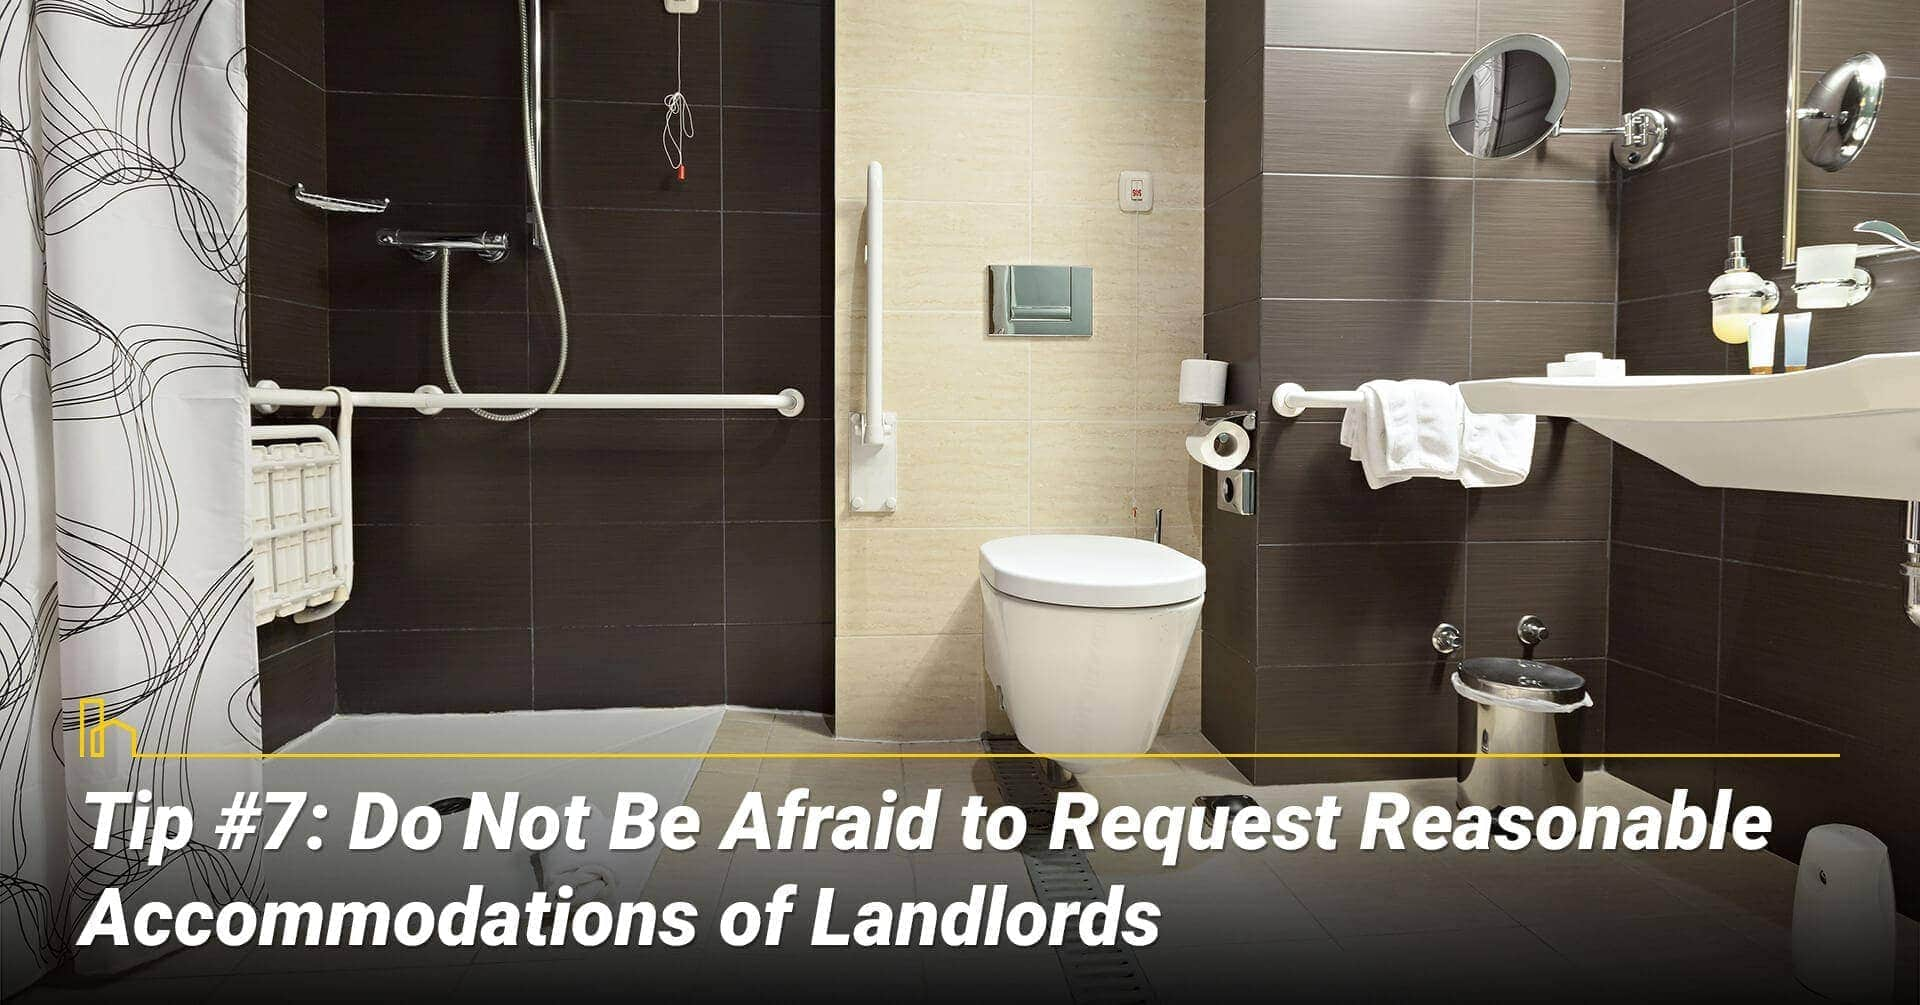 Tip #7: Do Not Be Afraid to Request Reasonable Accommodations of Landlords, ask and you shall receive